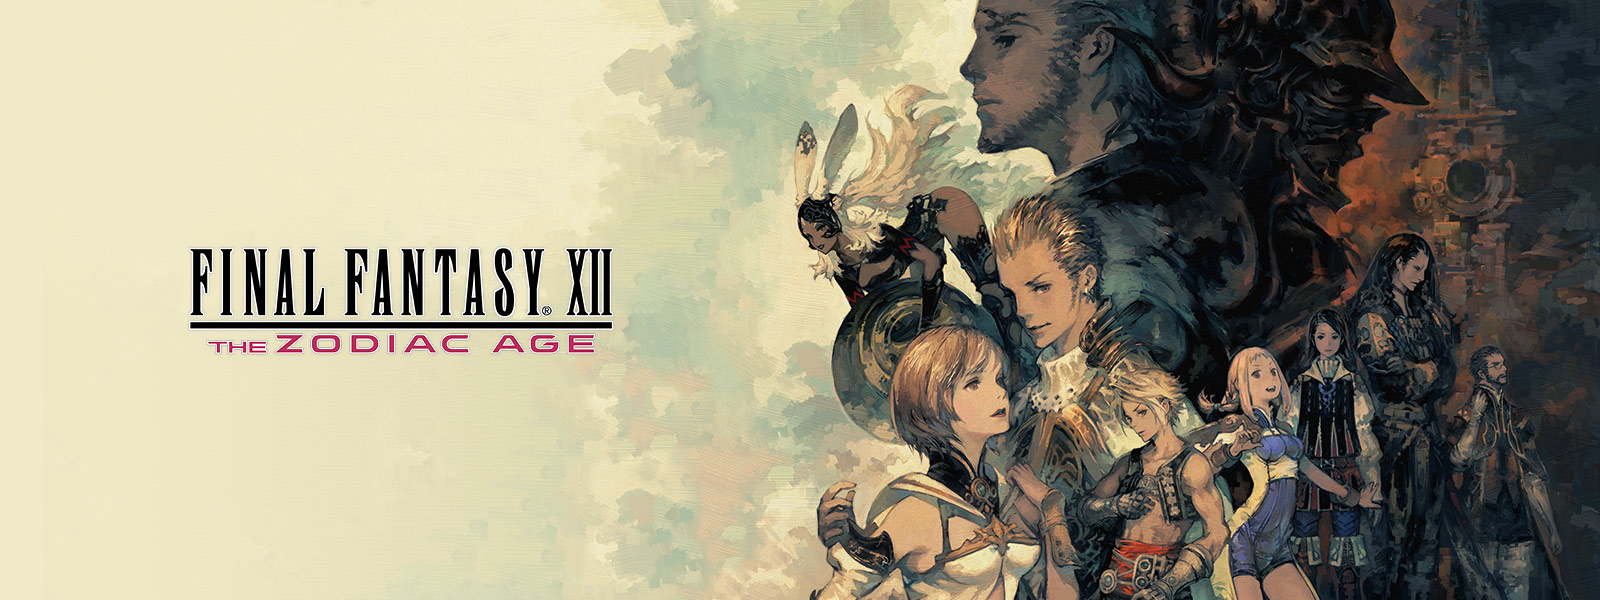 FINAL FANTASY XII THE ZODIAC AGE -hahmomontaasi